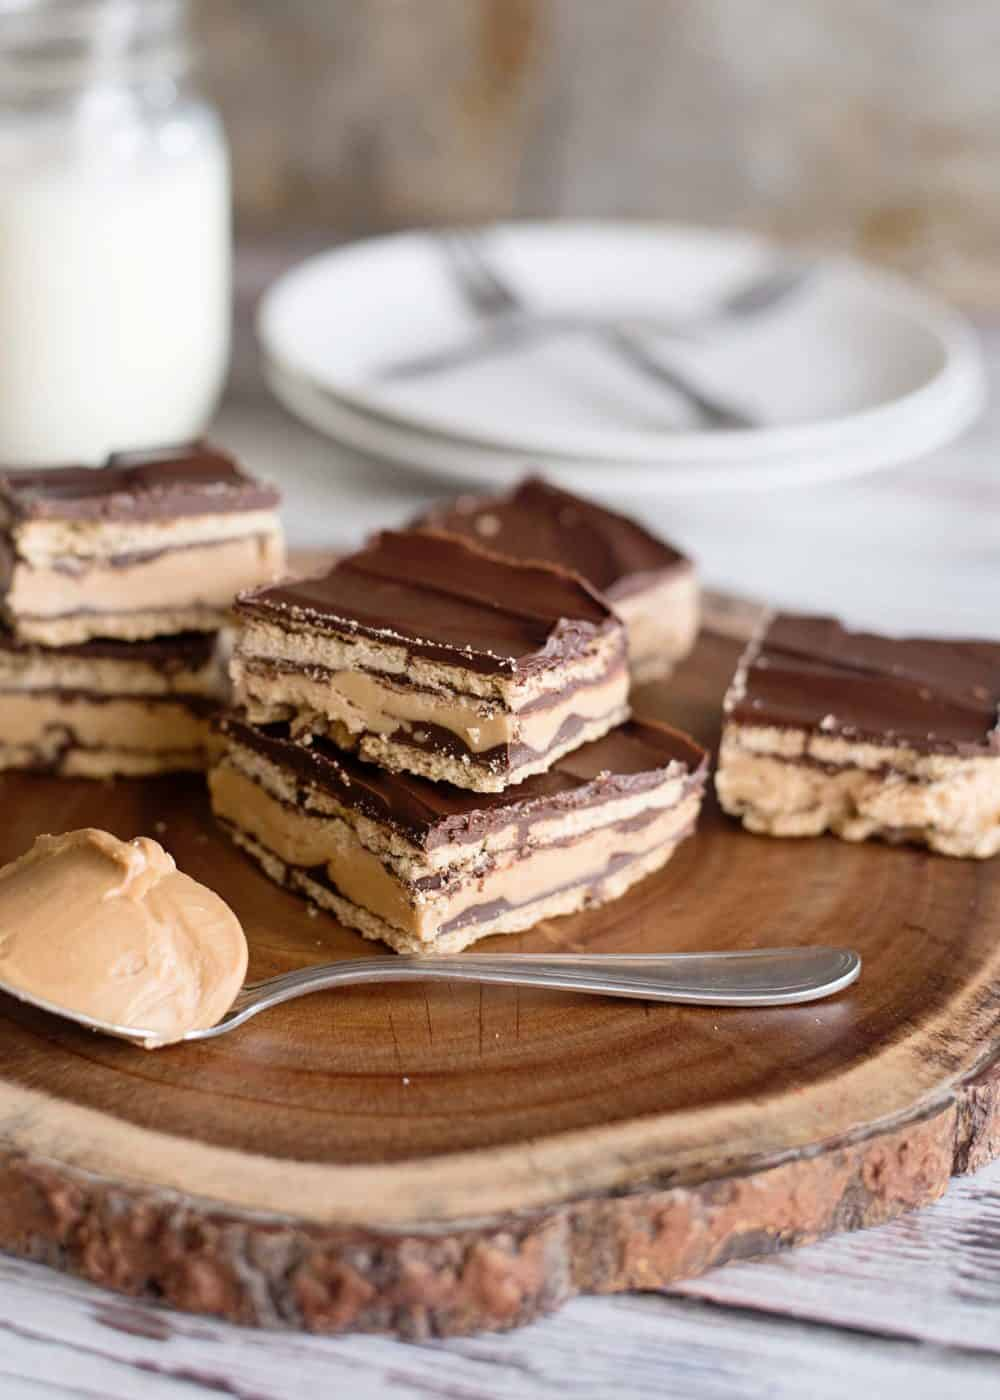 no-bake peanut butter patty bars on log slice with glass of milk in background